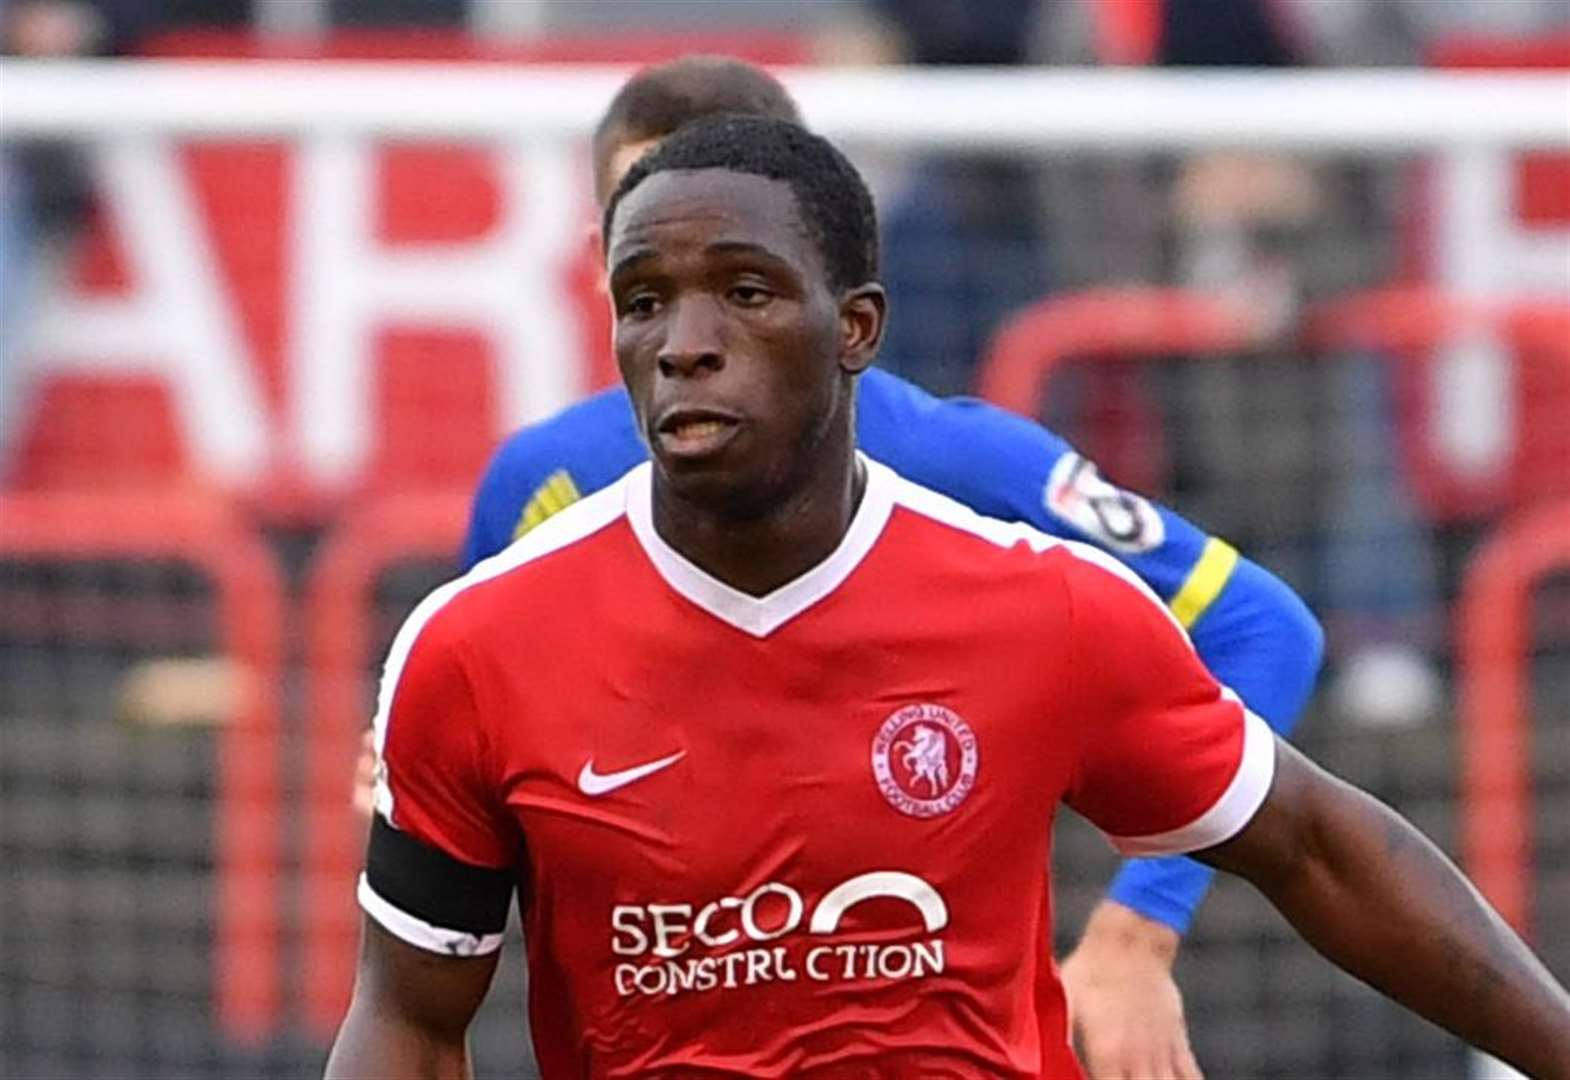 Olu out to prove point after Stones move